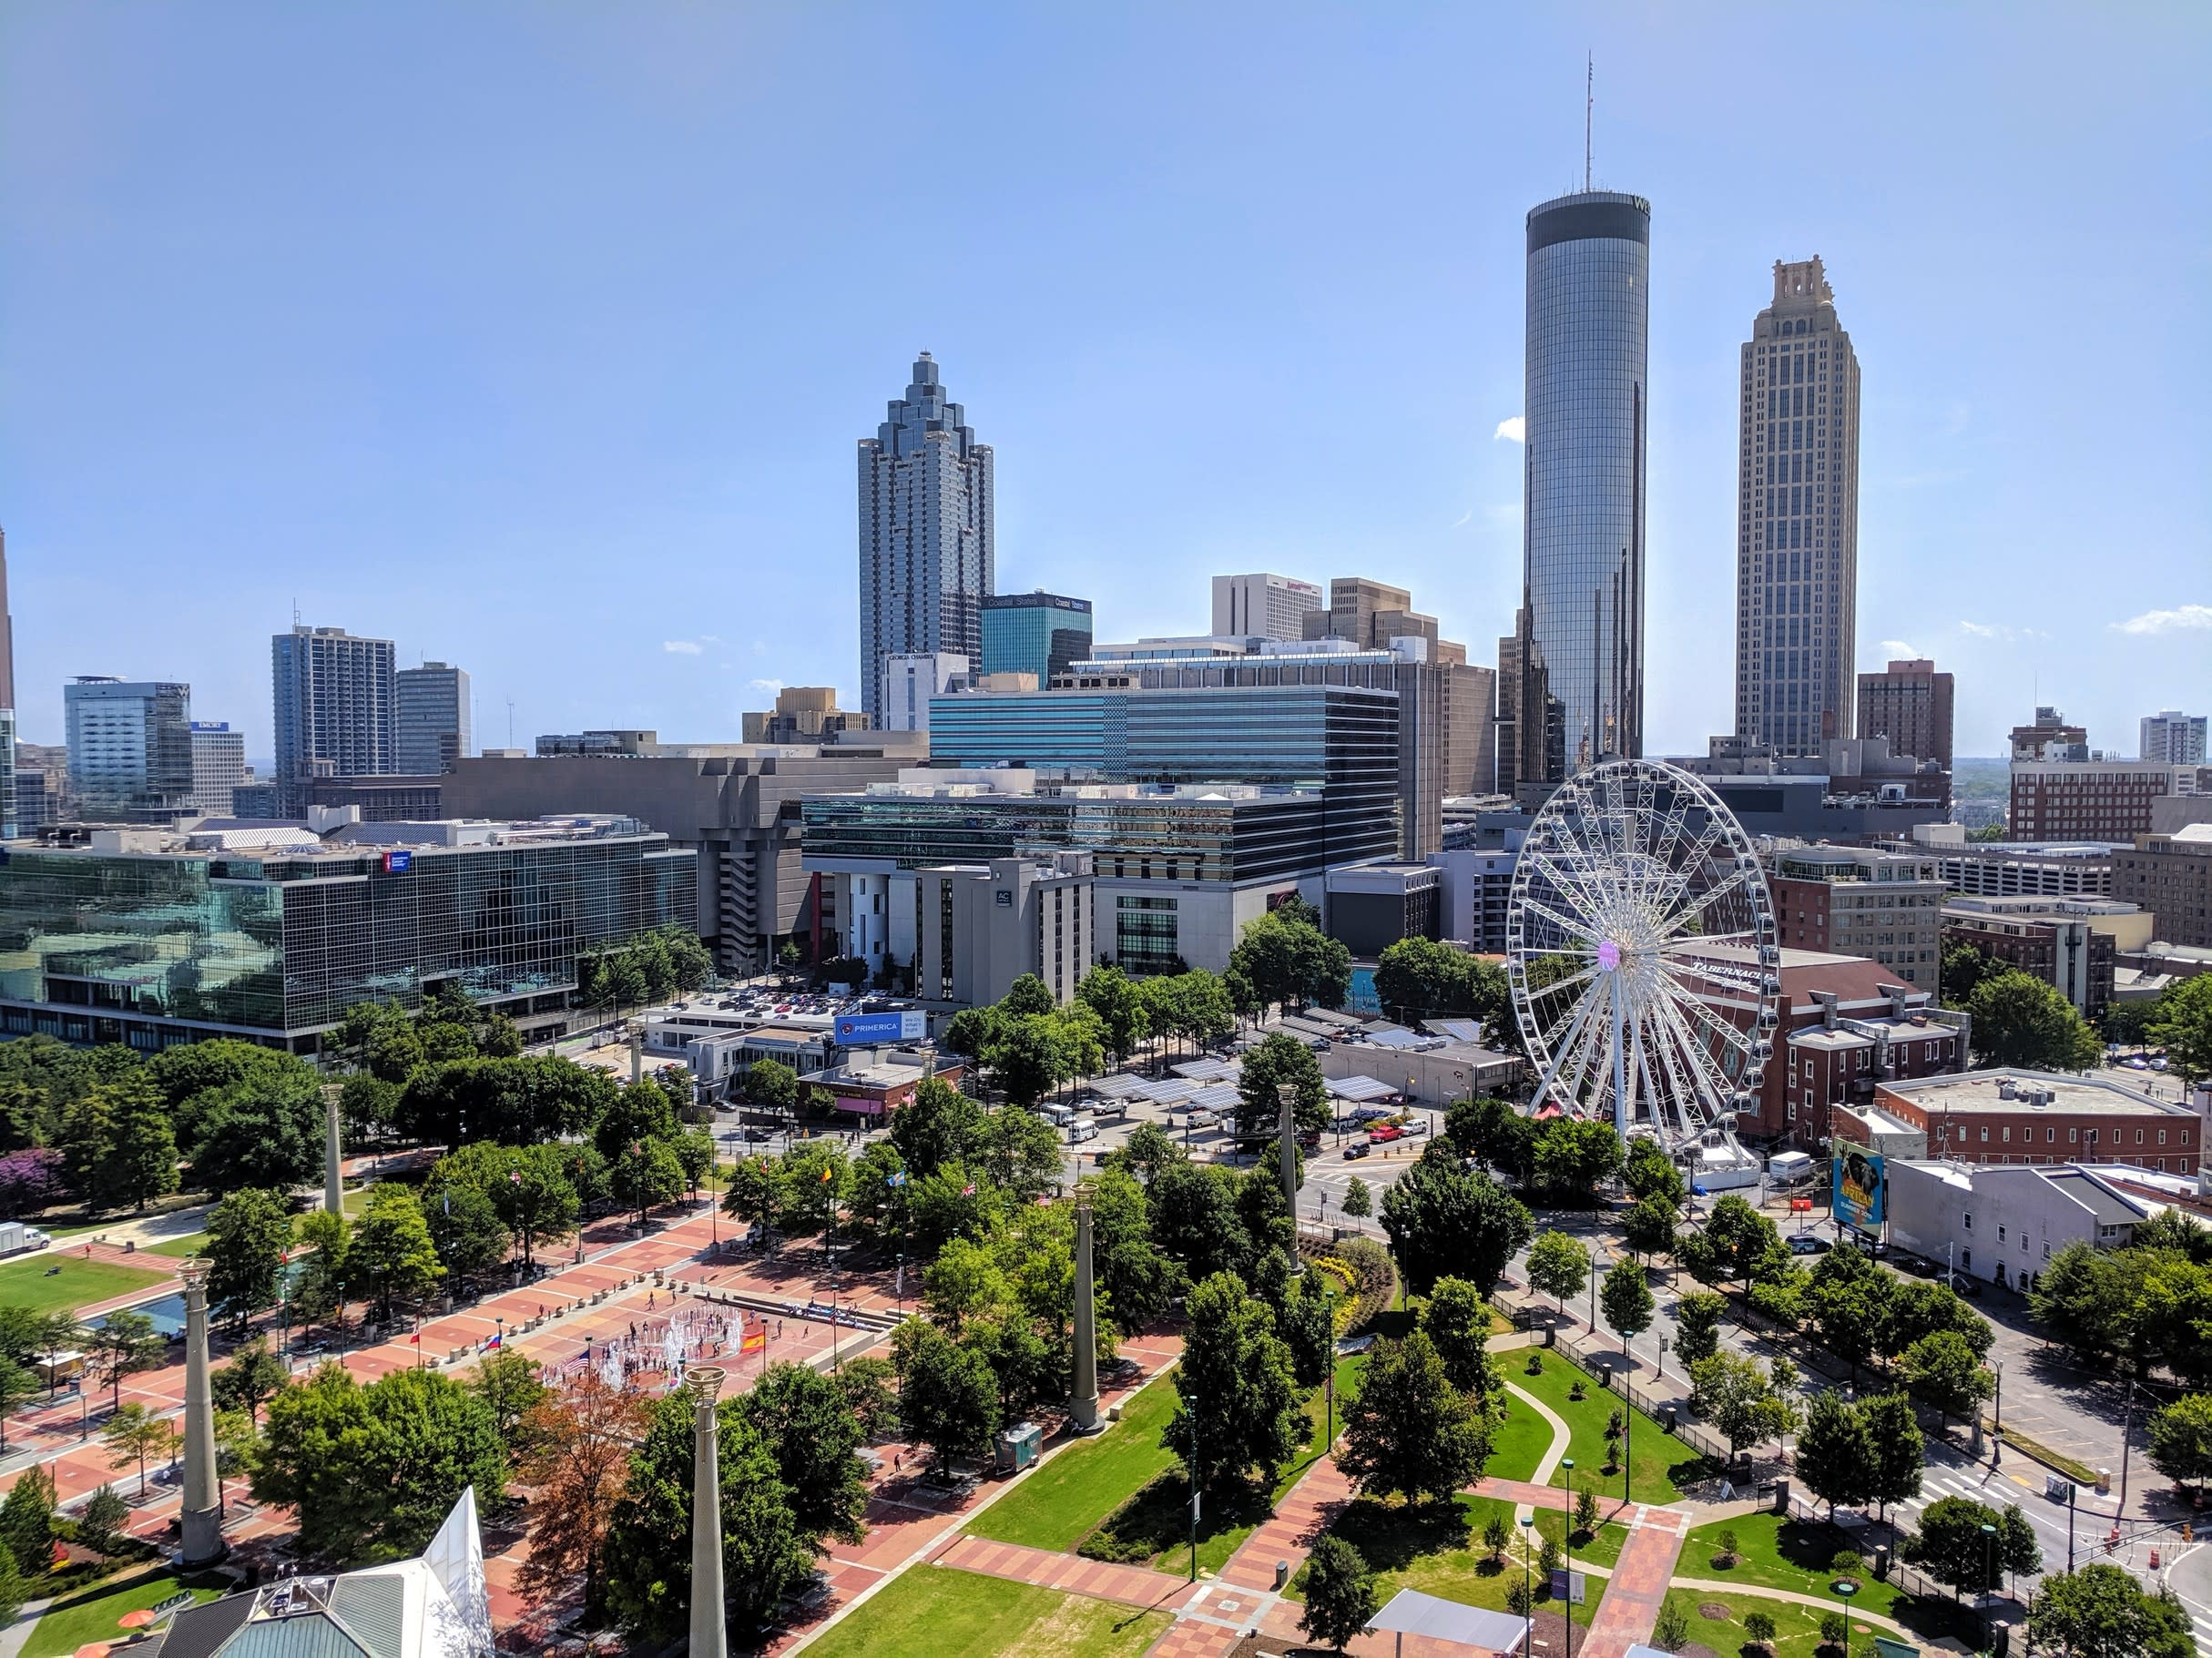 Centennial Olympic Park day time